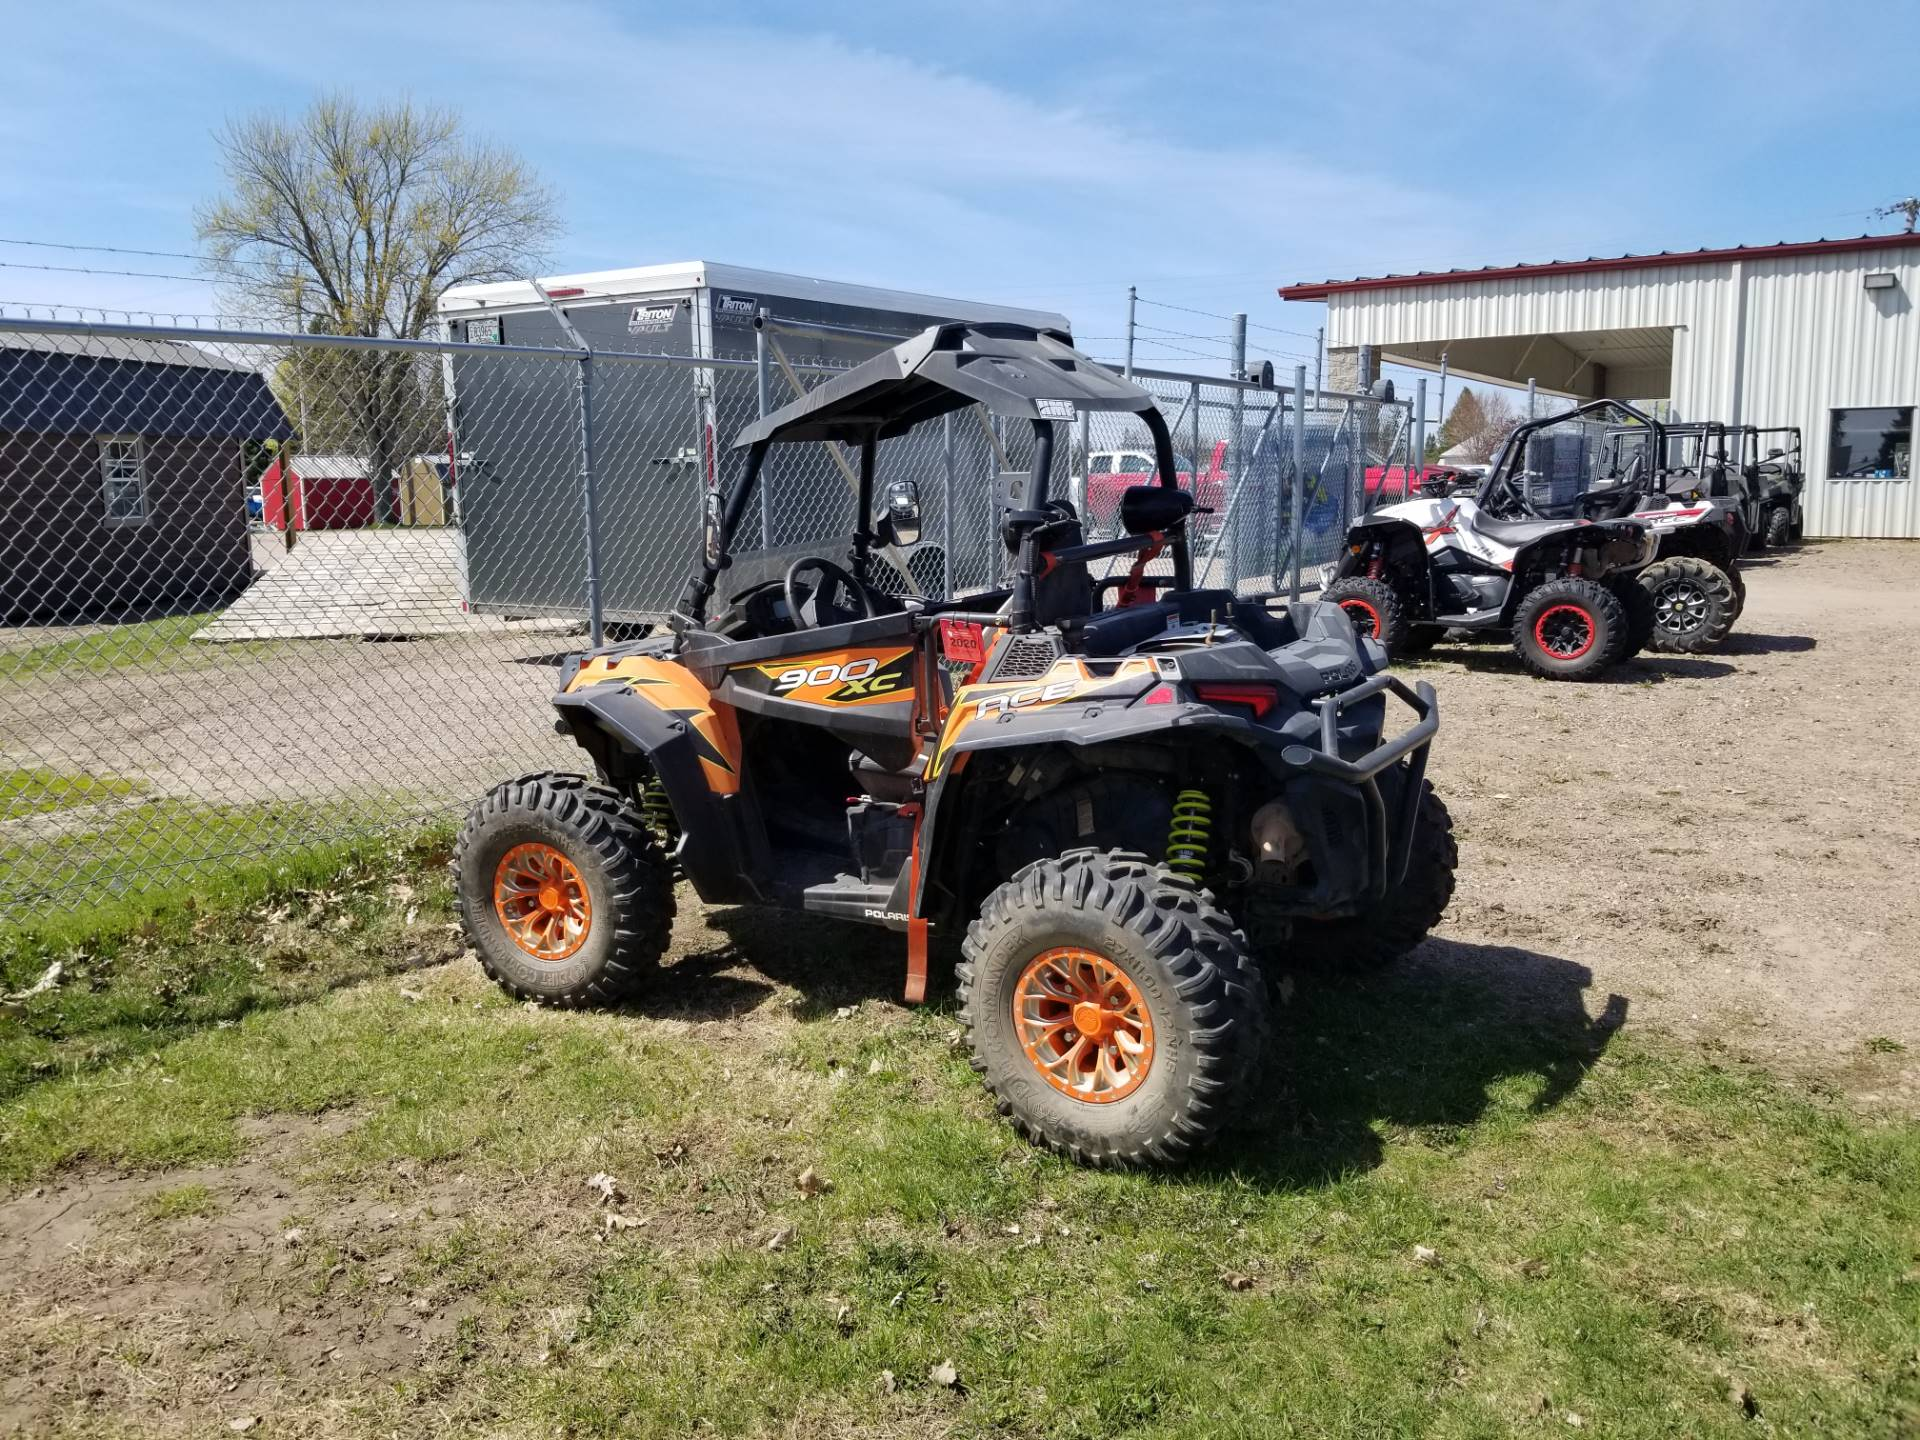 2017 Polaris Ace 900 XC in Antigo, Wisconsin - Photo 1